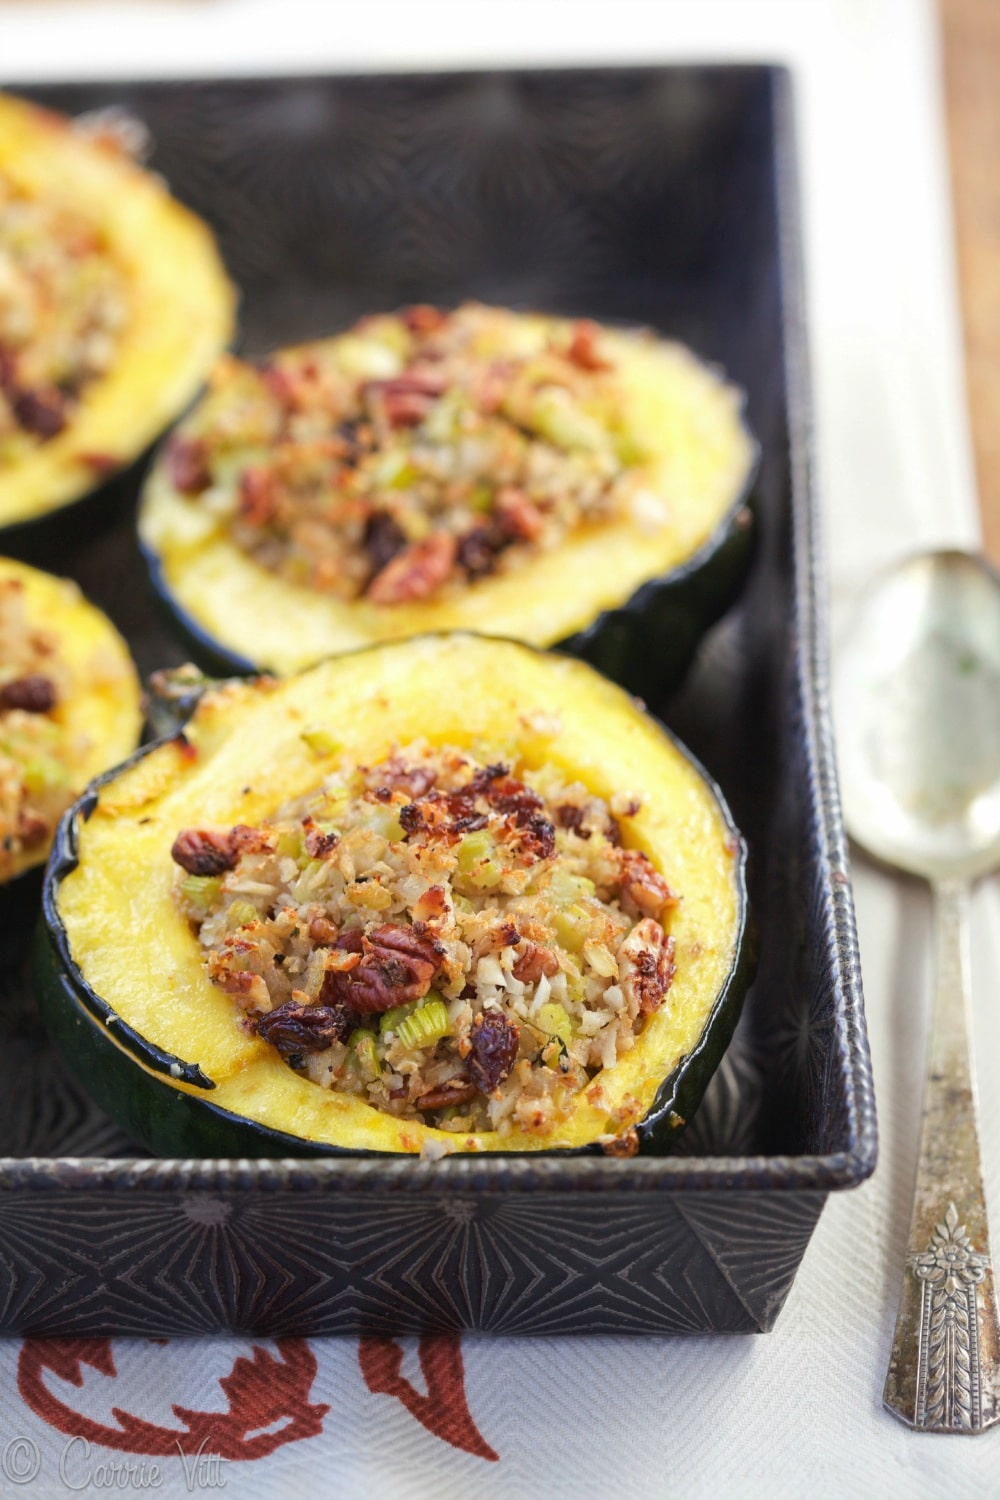 Stuffed acorn squash makes for an easy weeknight meal. It's easy to ...